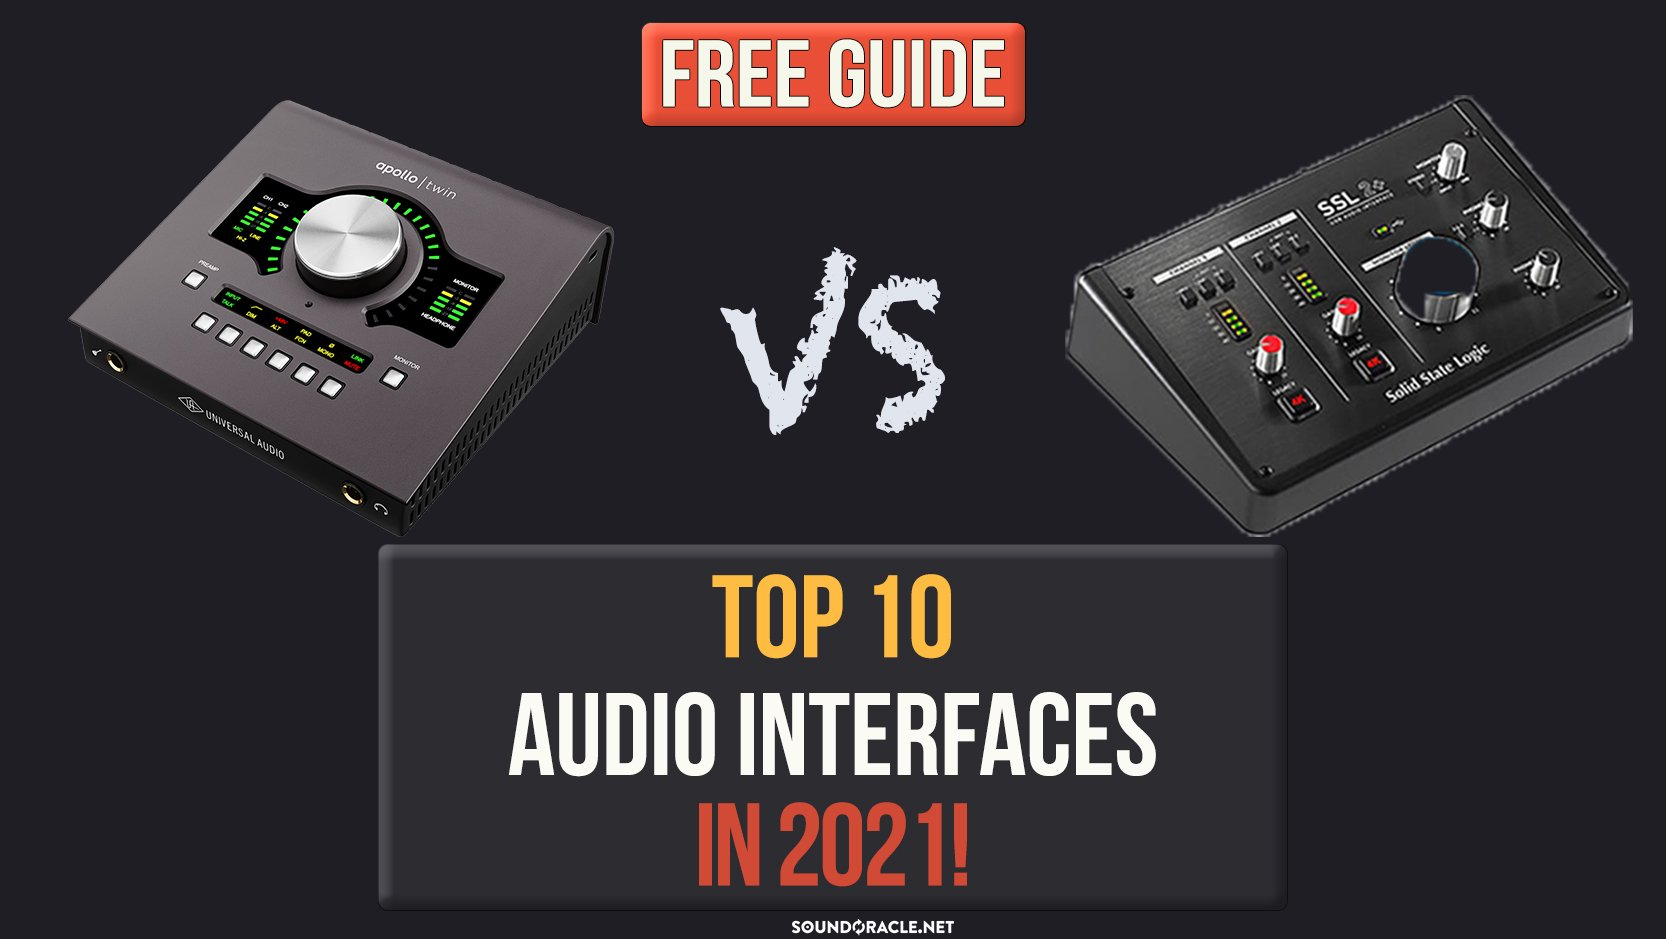 Top 10 Interfaces For Music Producers In 2021!